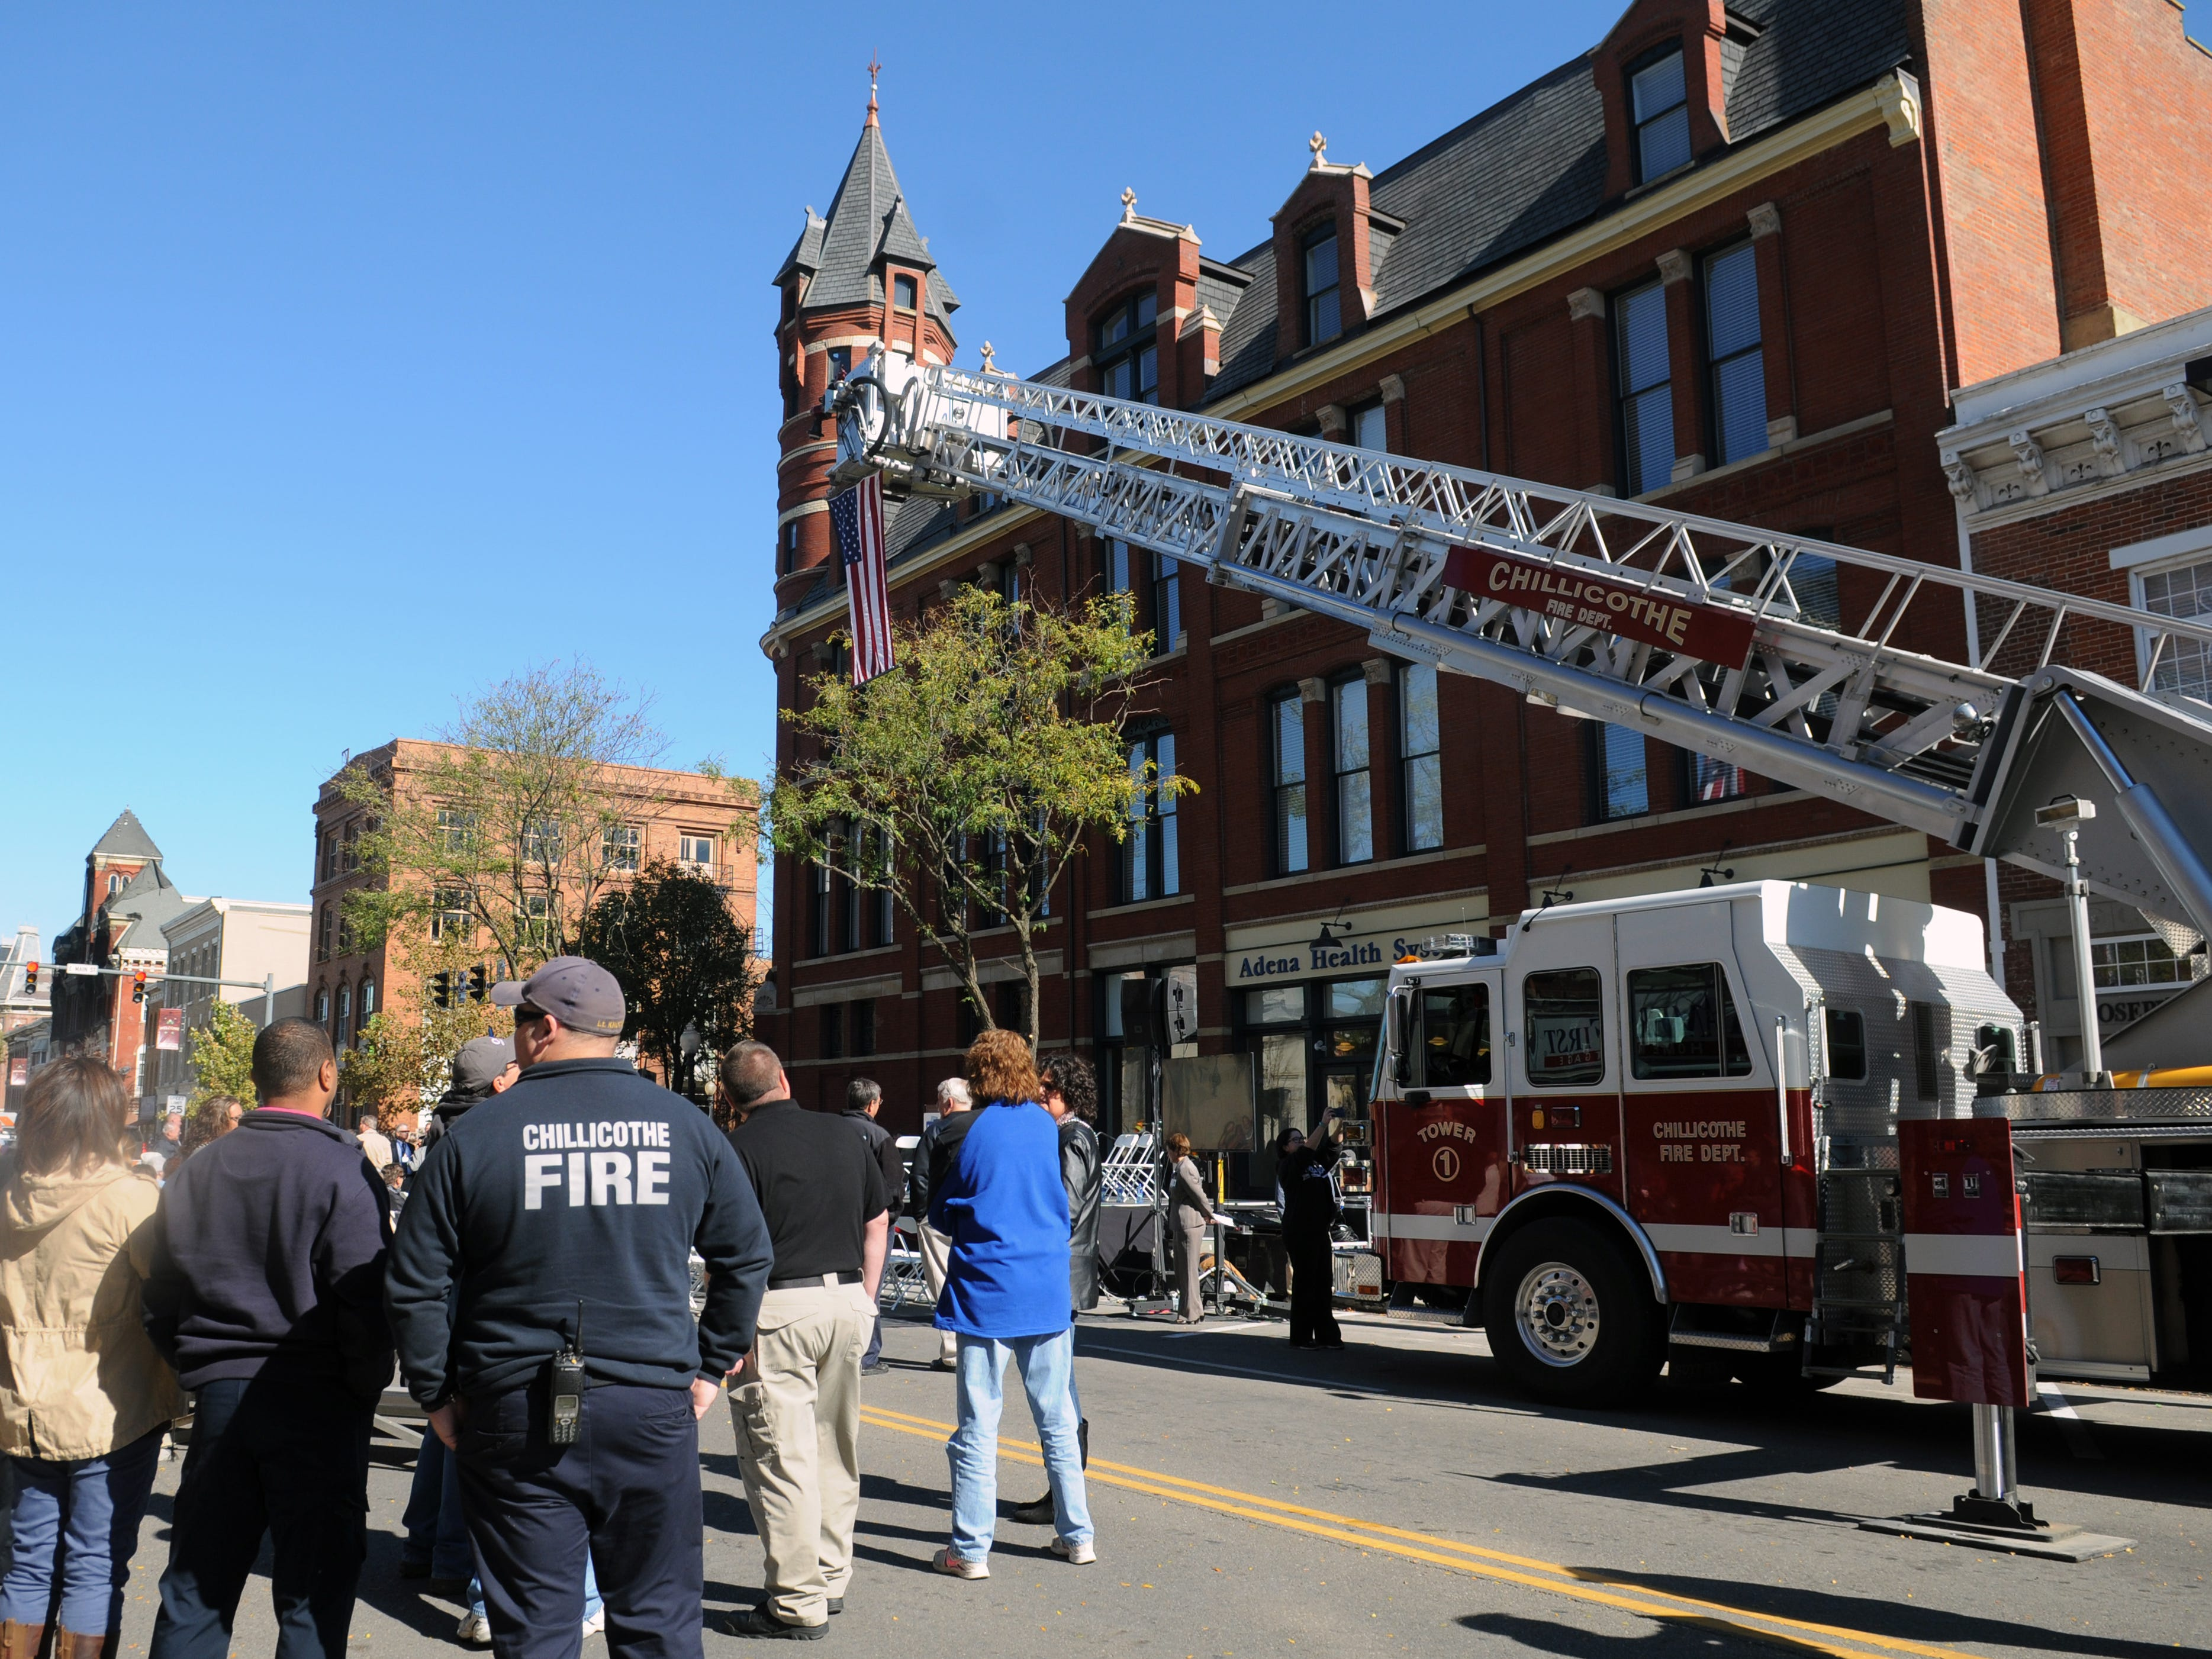 Members of the Chillicothe Fire Department gather before the reopening of the Carlisle building in October 2015.